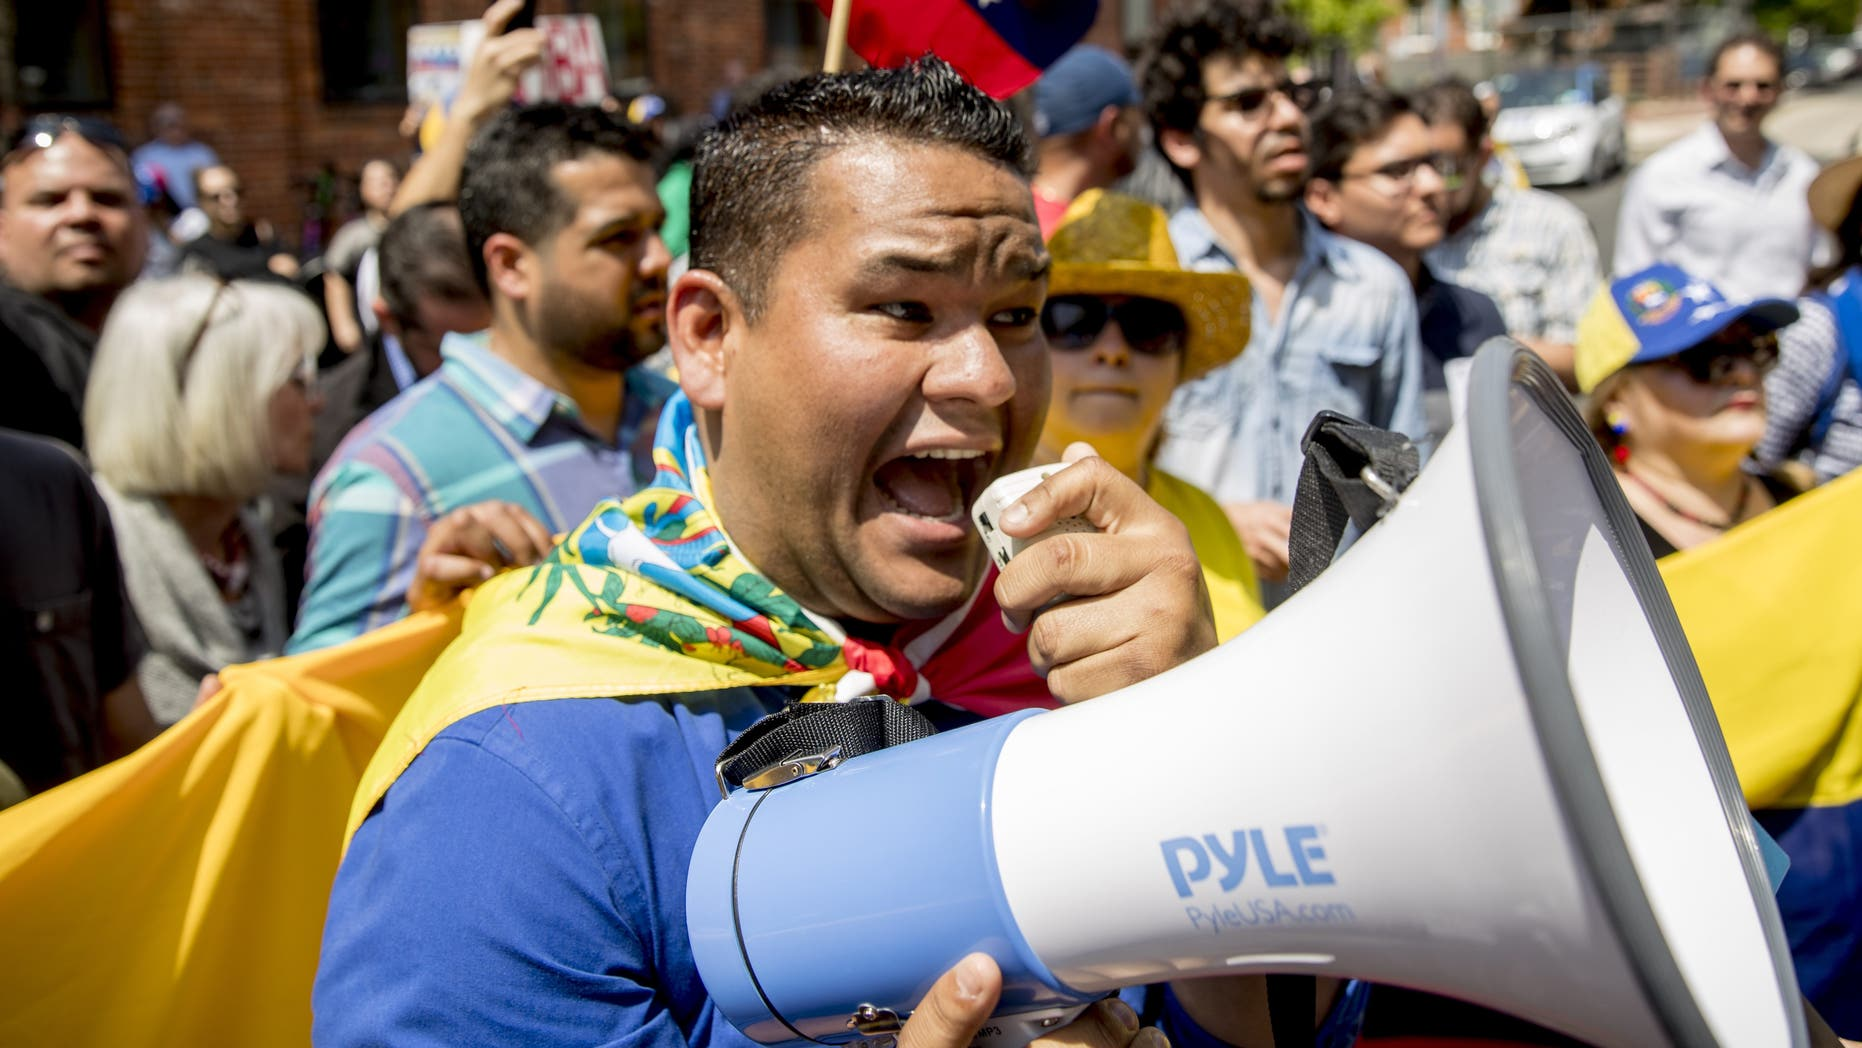 Supporters of interim government opposition leader Juan Guaido yell chants toward pro-Nicolas Maduro supporters as they rally outside of the Venezuelan Embassy in Washington, Tuesday, April 30, 2019. (AP Photo/Andrew Harnik)